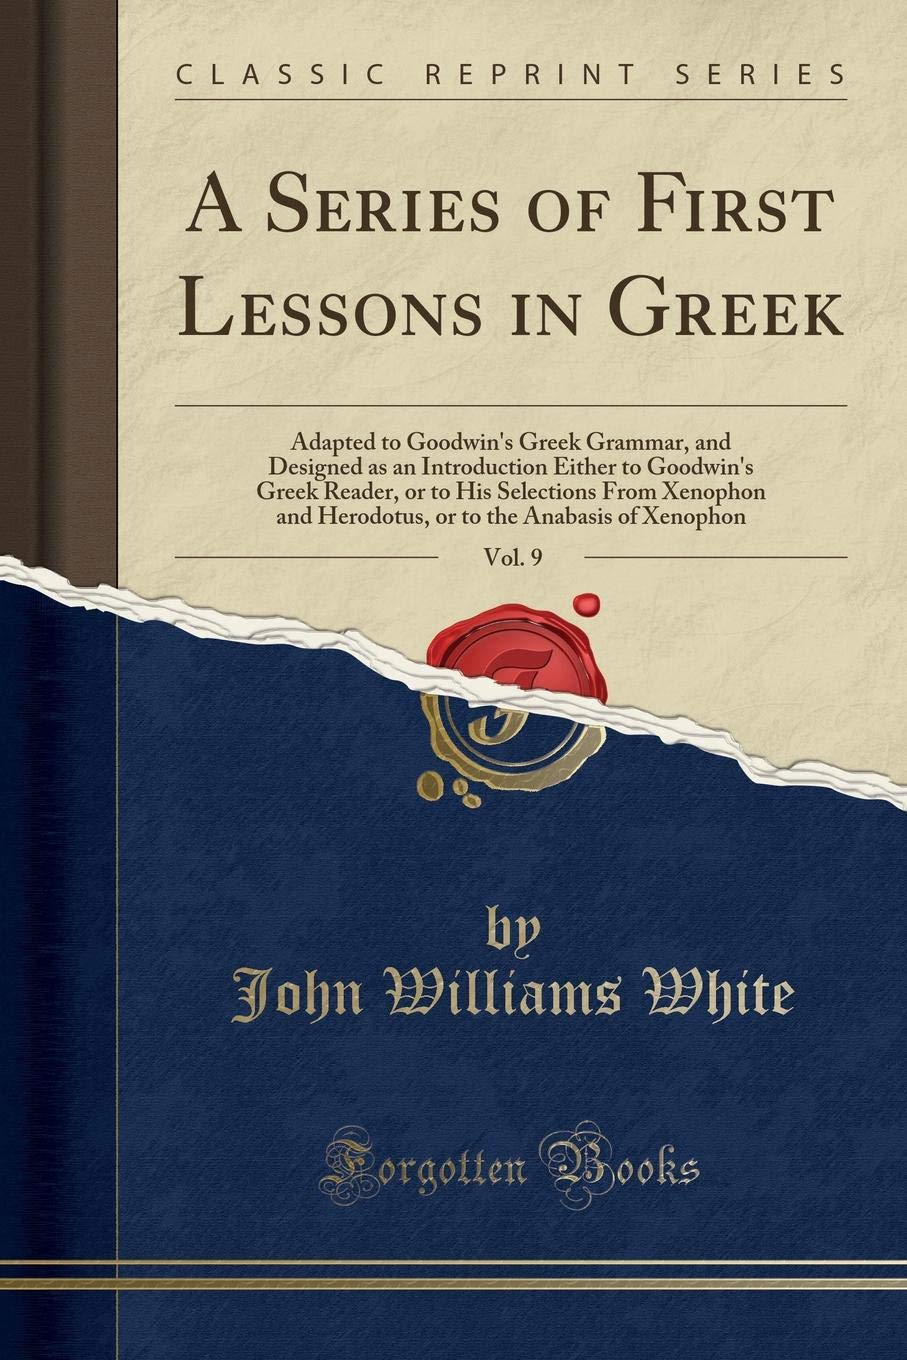 Download A Series of First Lessons in Greek, Vol. 9: Adapted to Goodwin's Greek Grammar, and Designed as an Introduction Either to Goodwin's Greek Reader, or ... to the Anabasis of Xenophon (Classic Reprint) pdf epub